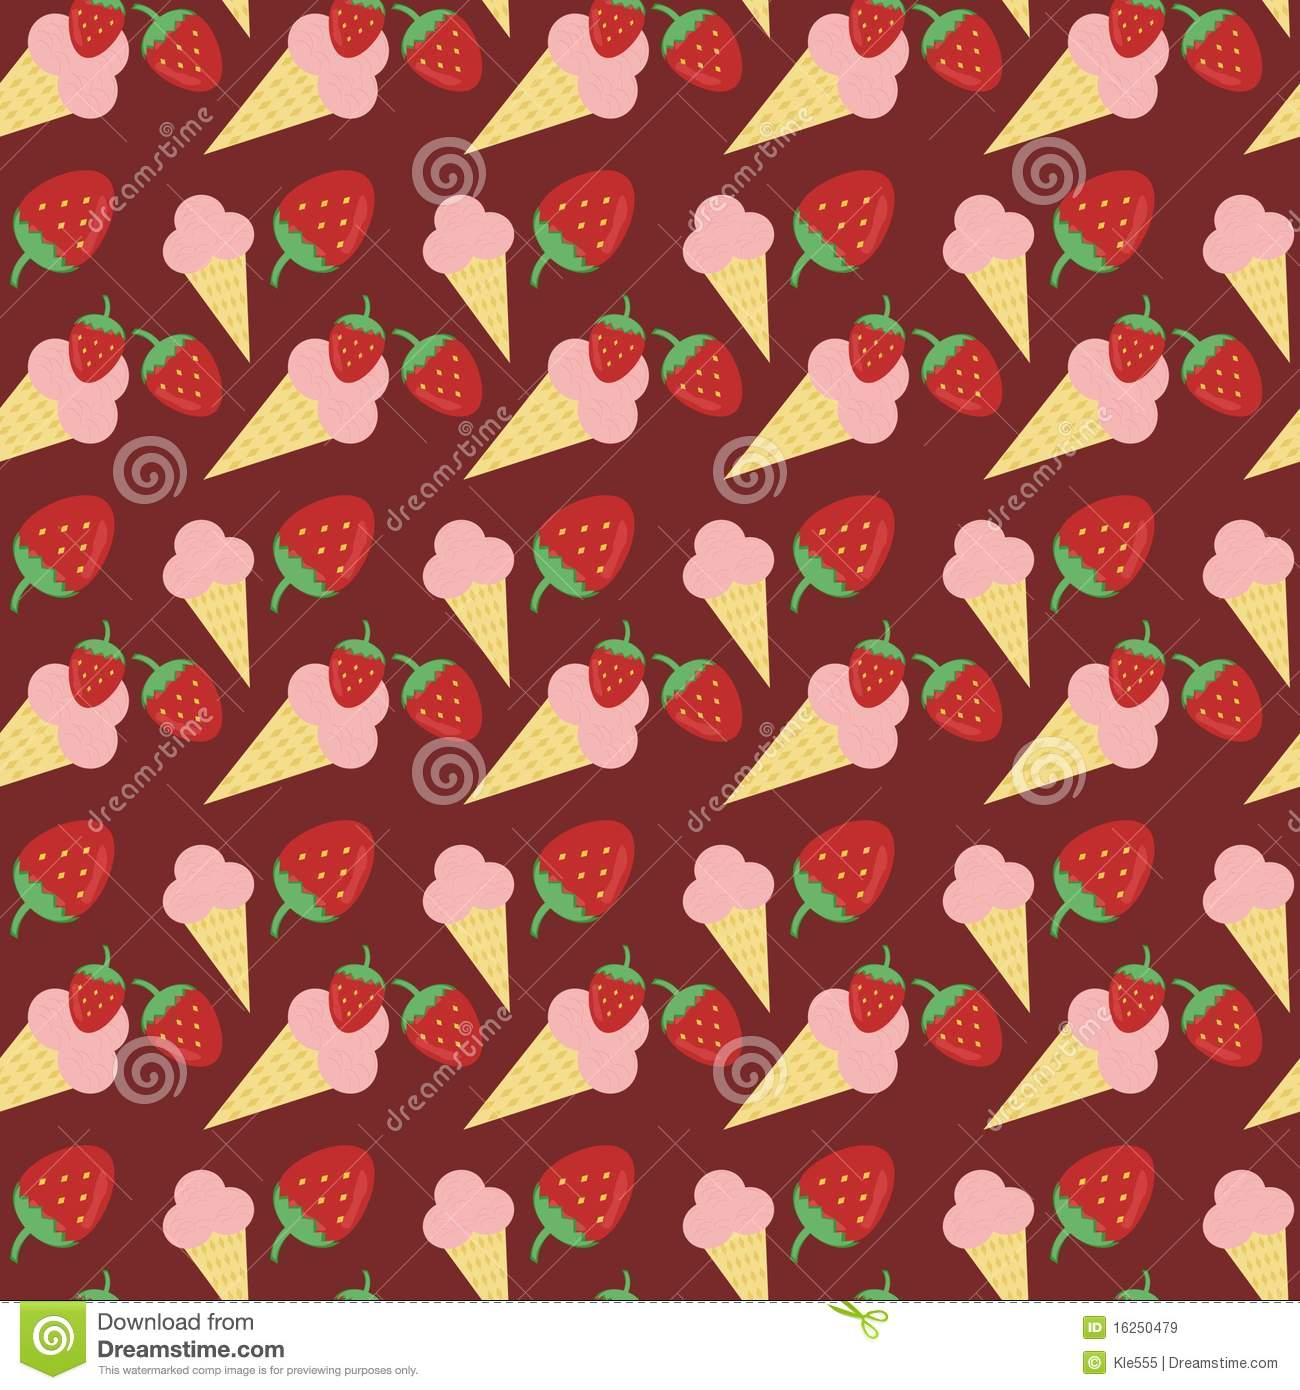 Seamless Ice Cream Wallpaper Royalty Free Stock Images: Seamless Background With Strawberry Ice Cream Royalty Free